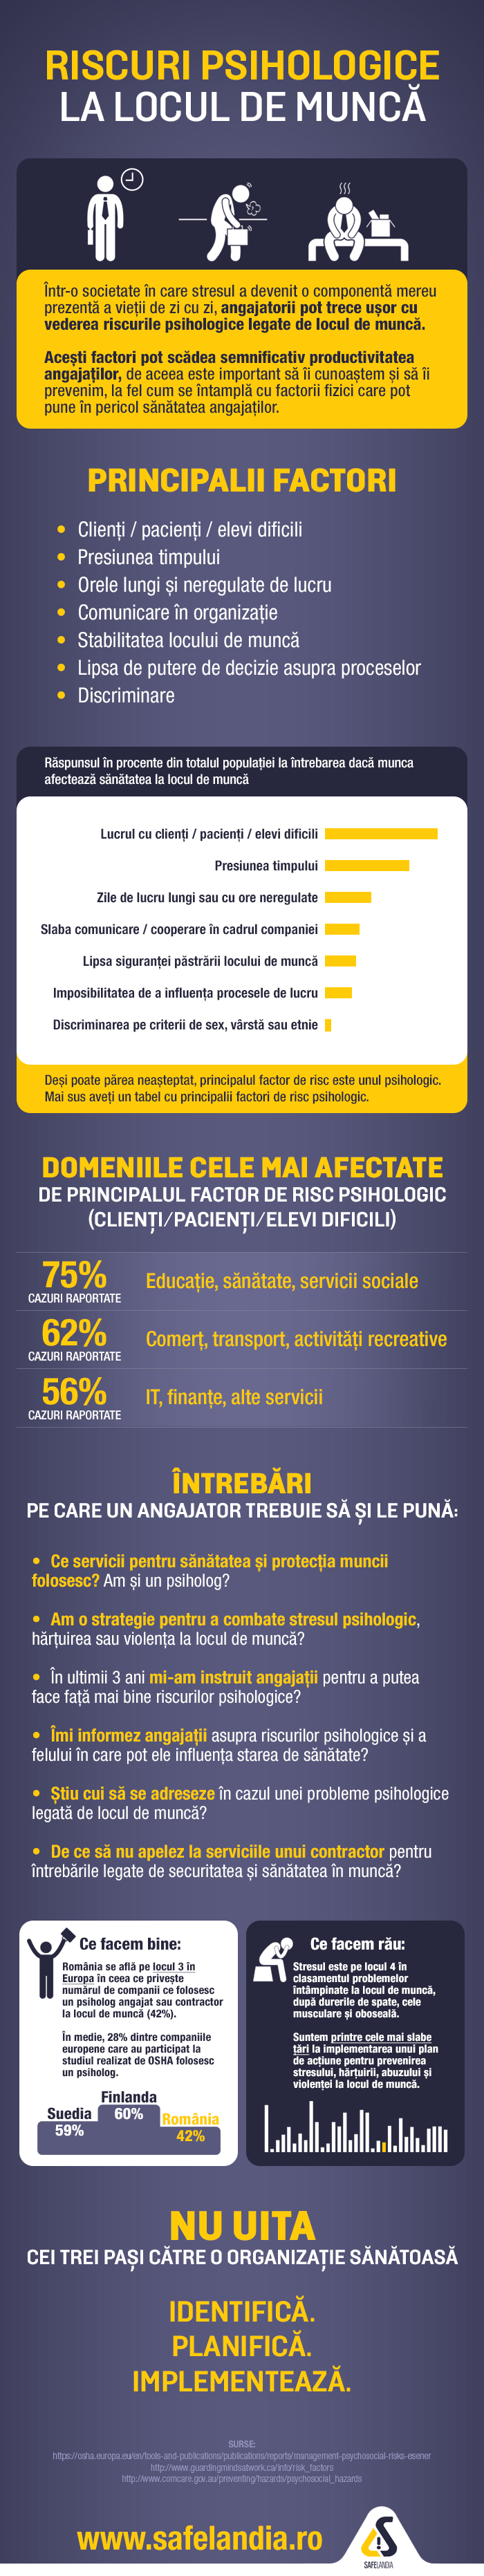 infographic_riscuri_psihologice